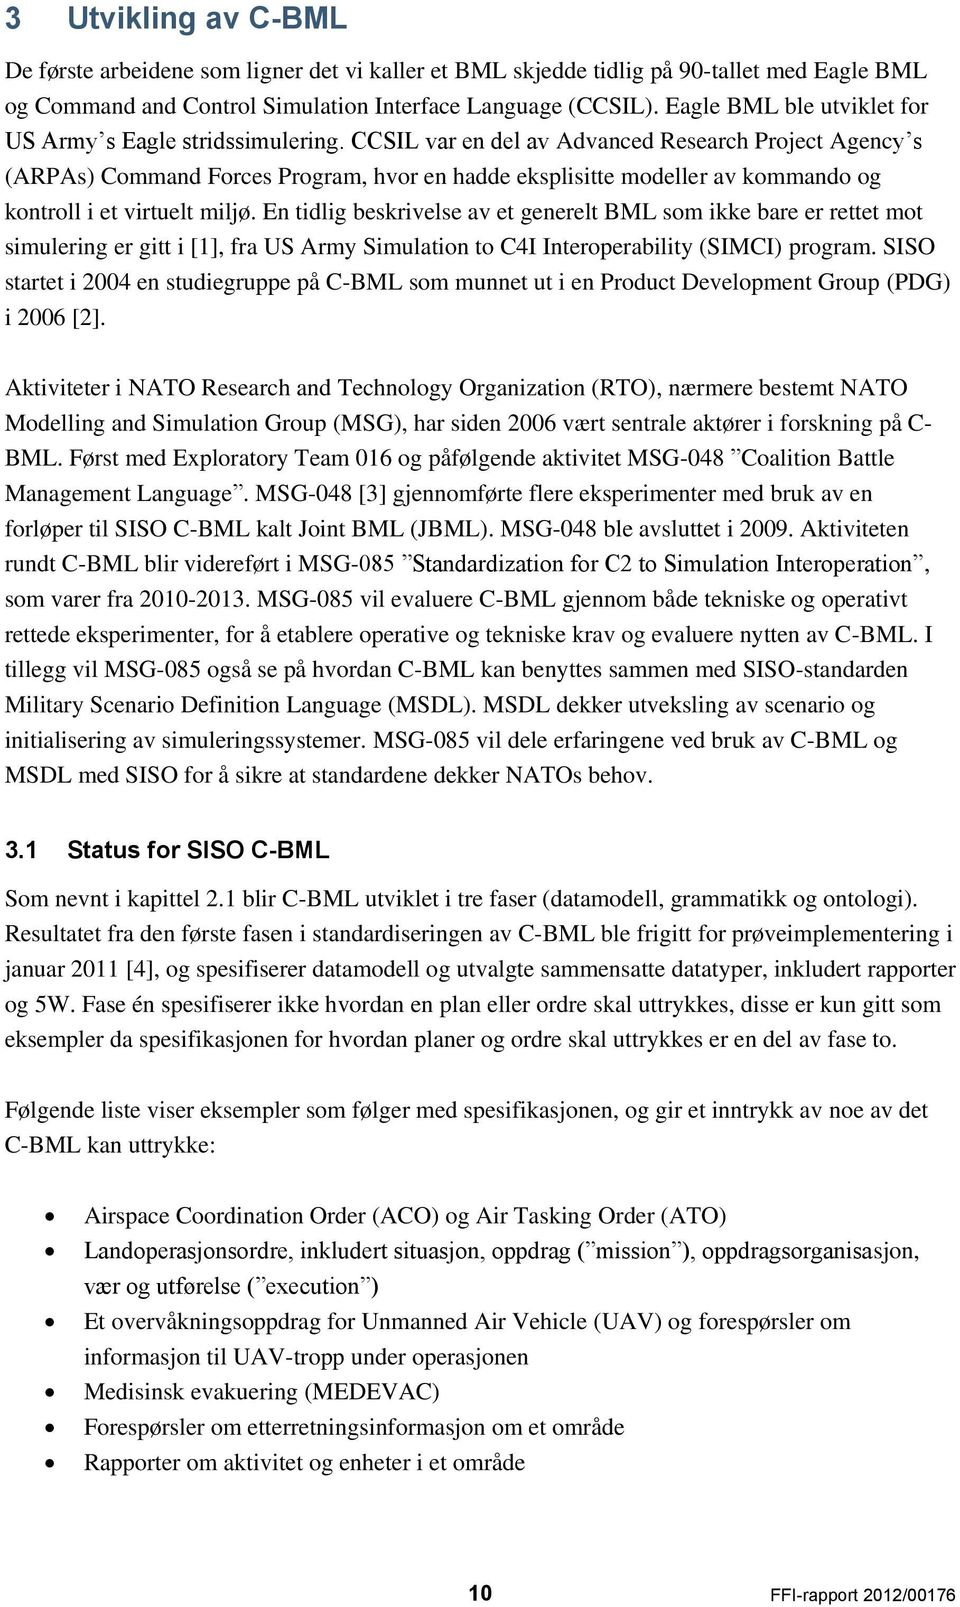 CCSIL var en del av Advanced Research Project Agency s (ARPAs) Command Forces Program, hvor en hadde eksplisitte modeller av kommando og kontroll i et virtuelt miljø.